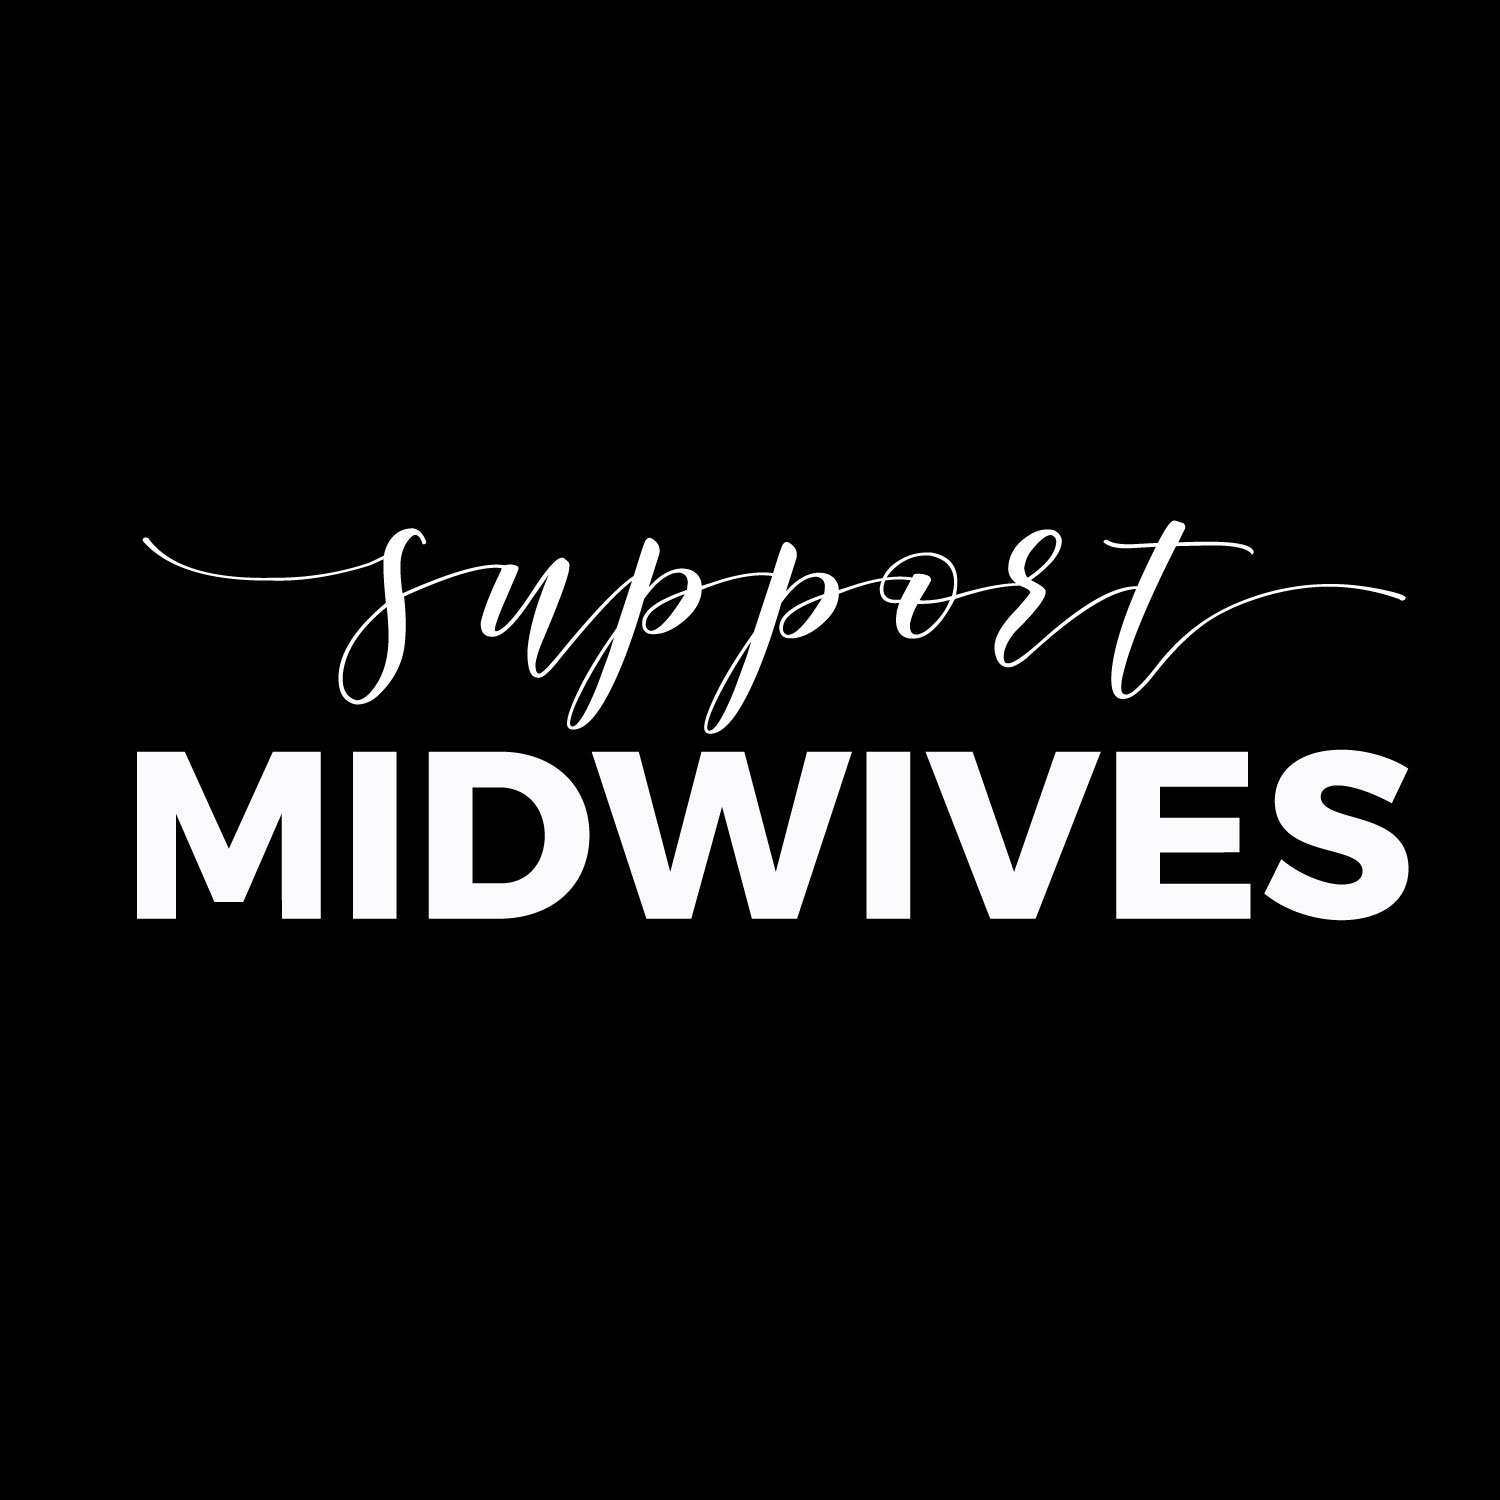 Support Midwives Shirt by Wild World Mama